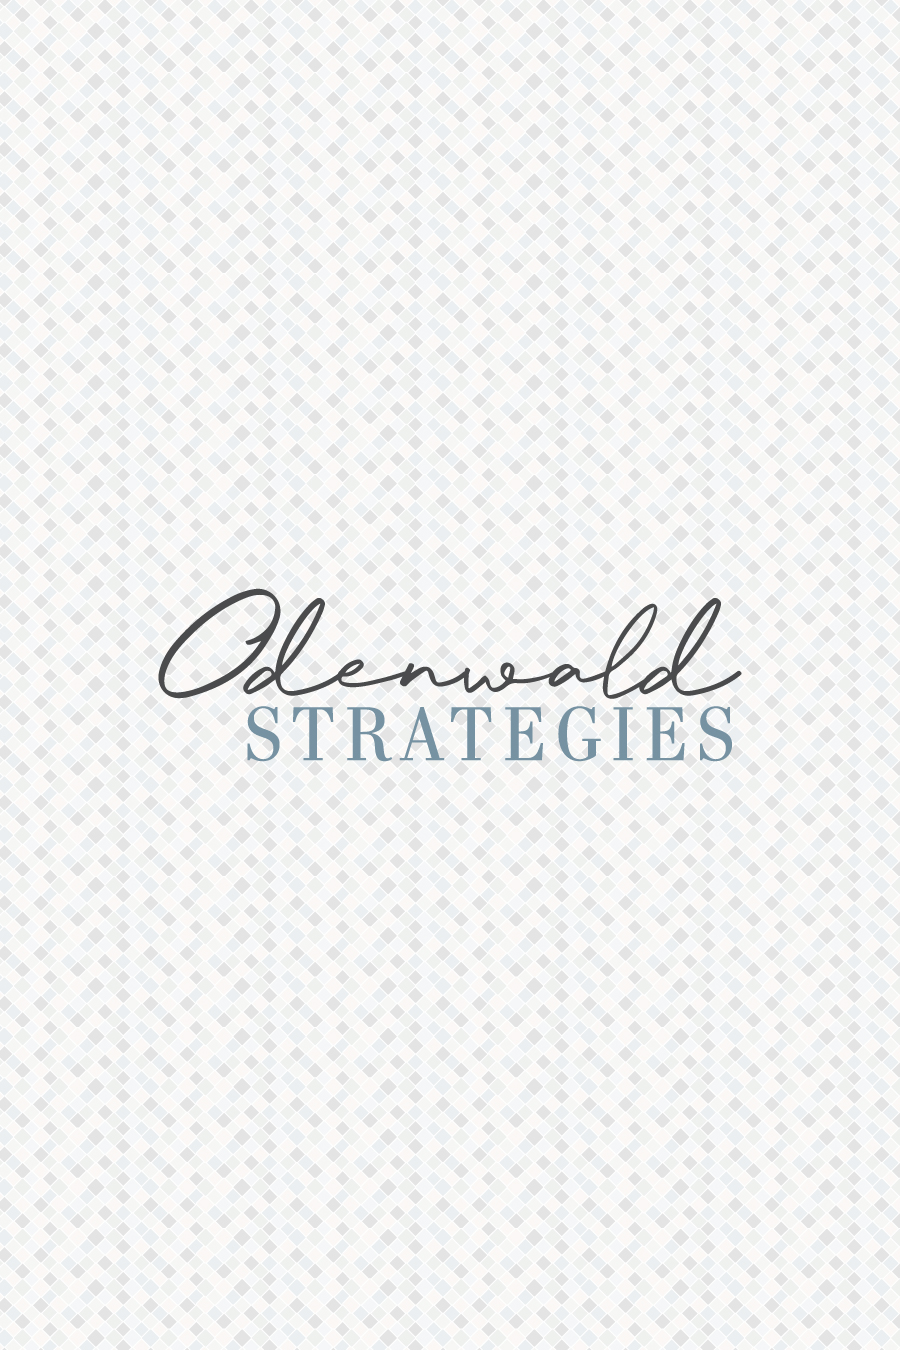 Brand Reveal: Odenwald Strategies